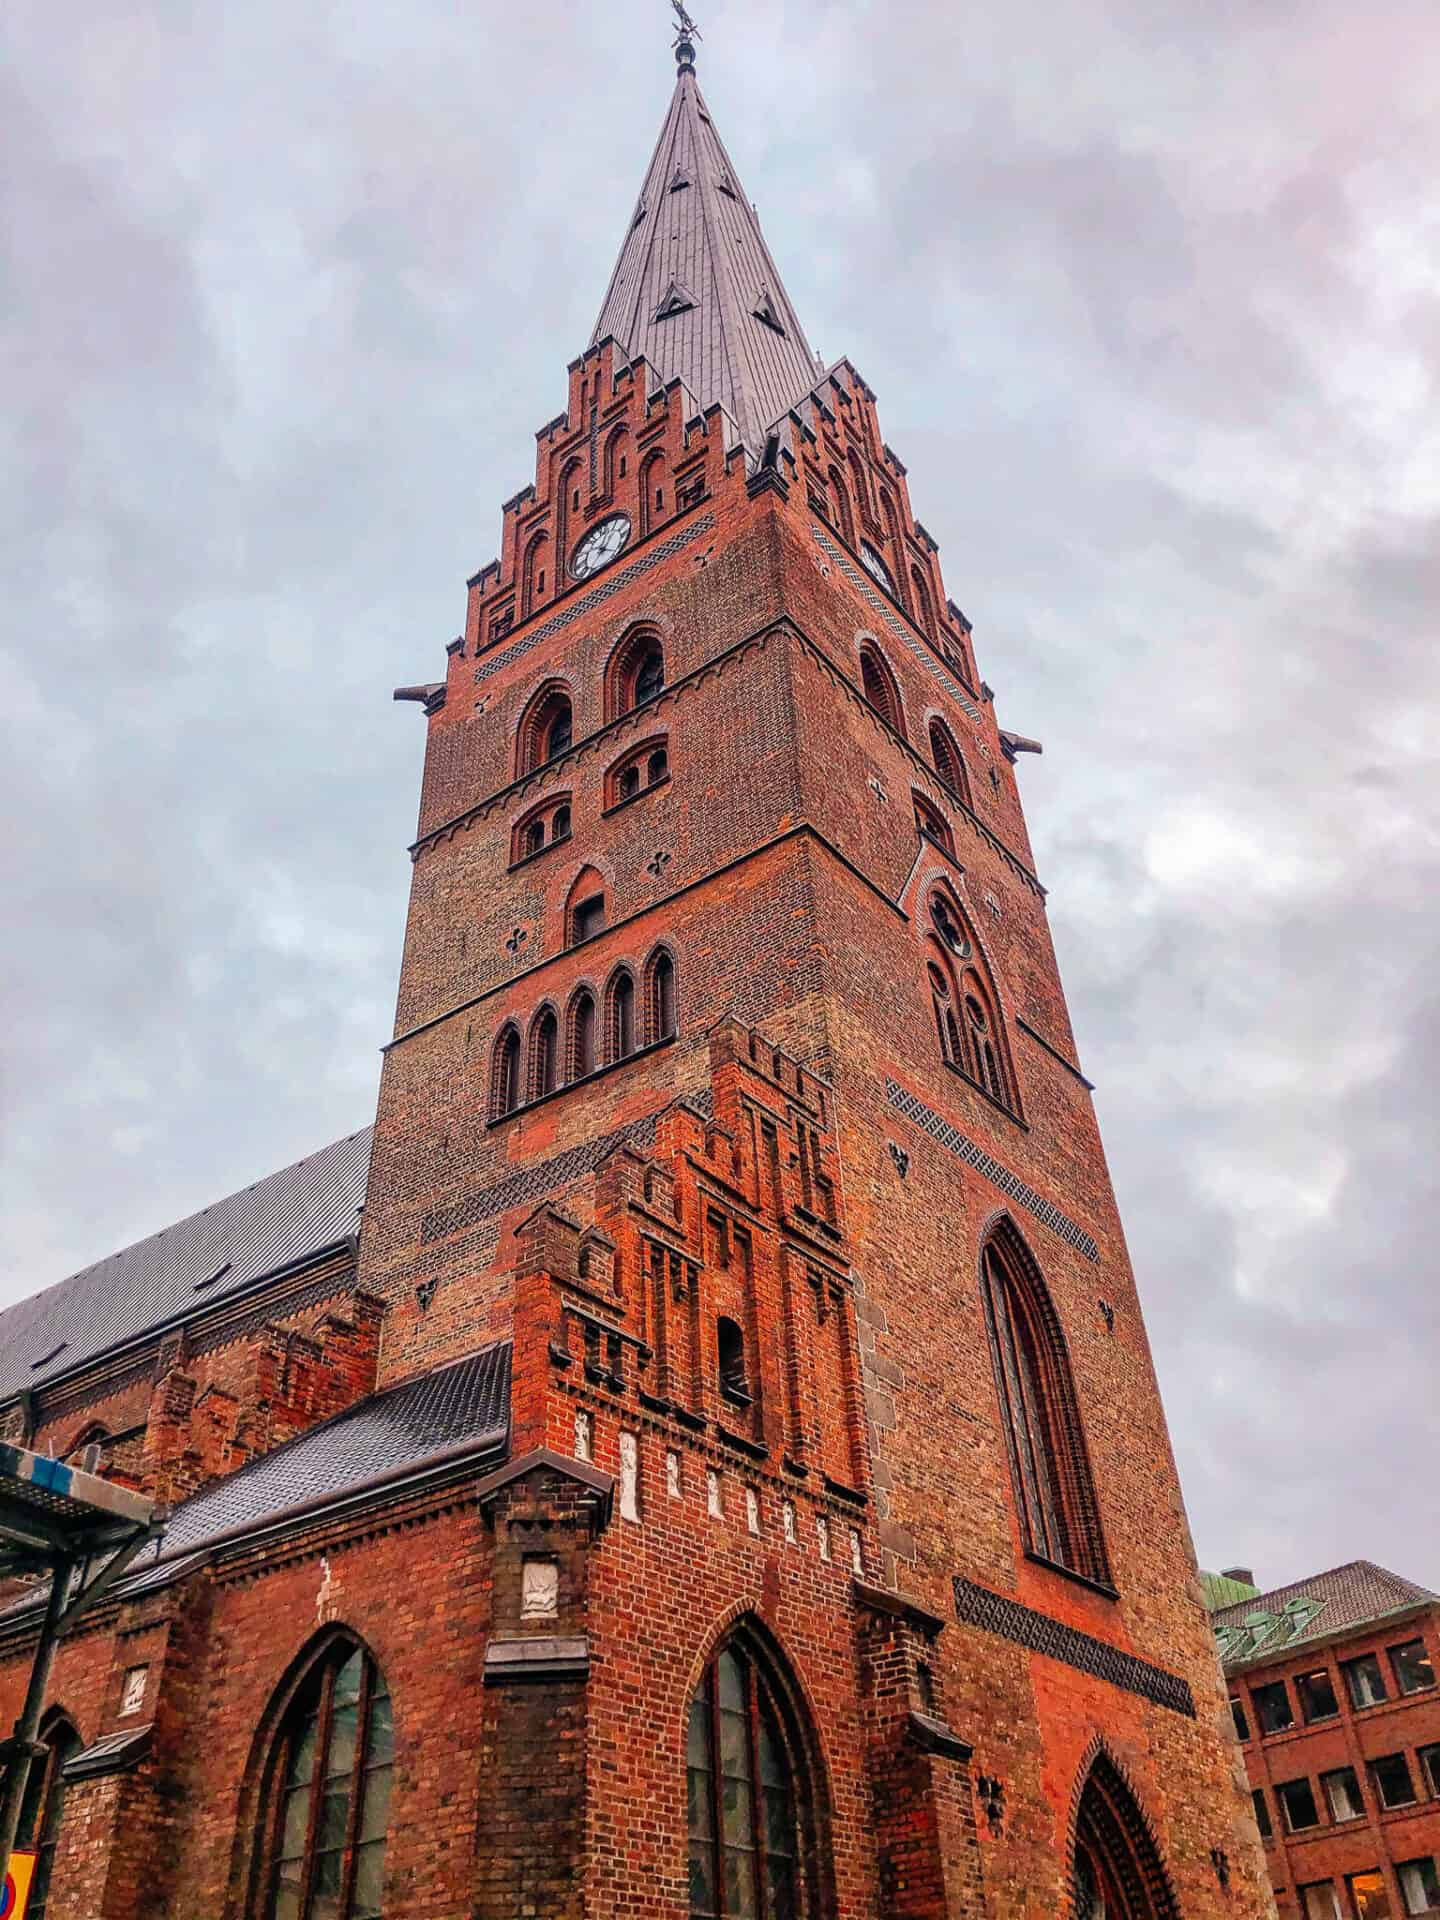 An old red brick church tower